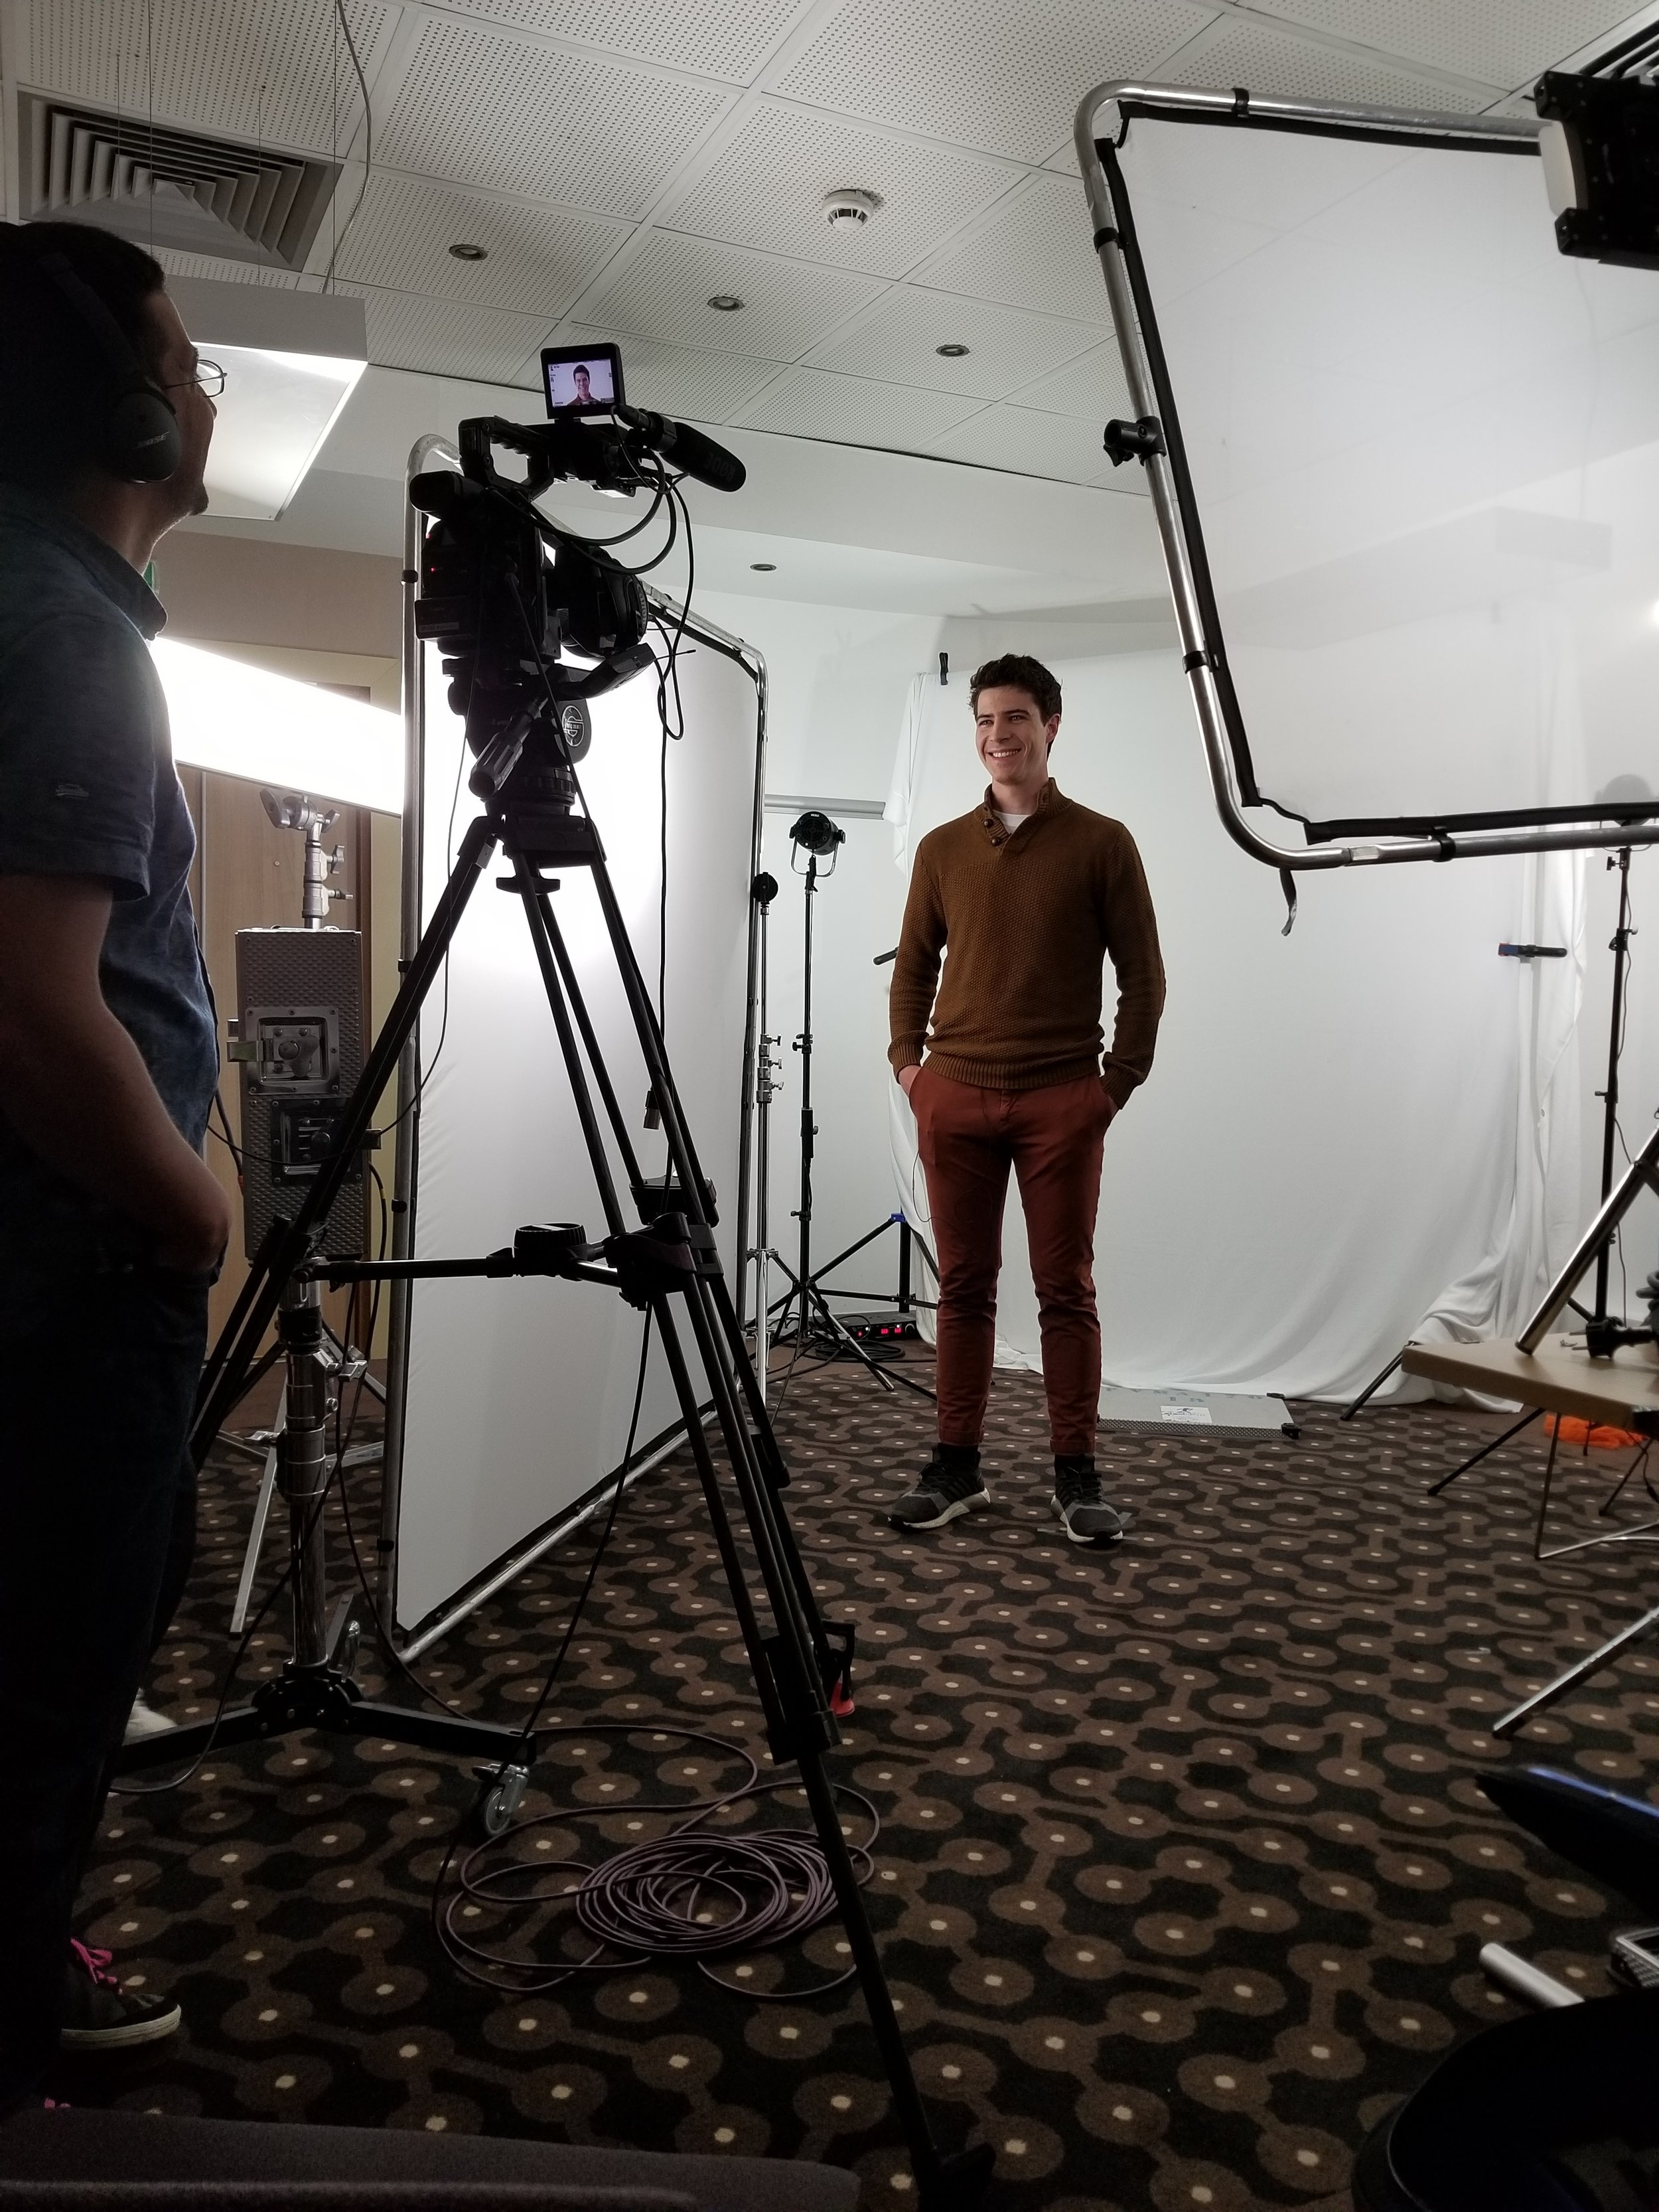 Perry halfway through the video interview.